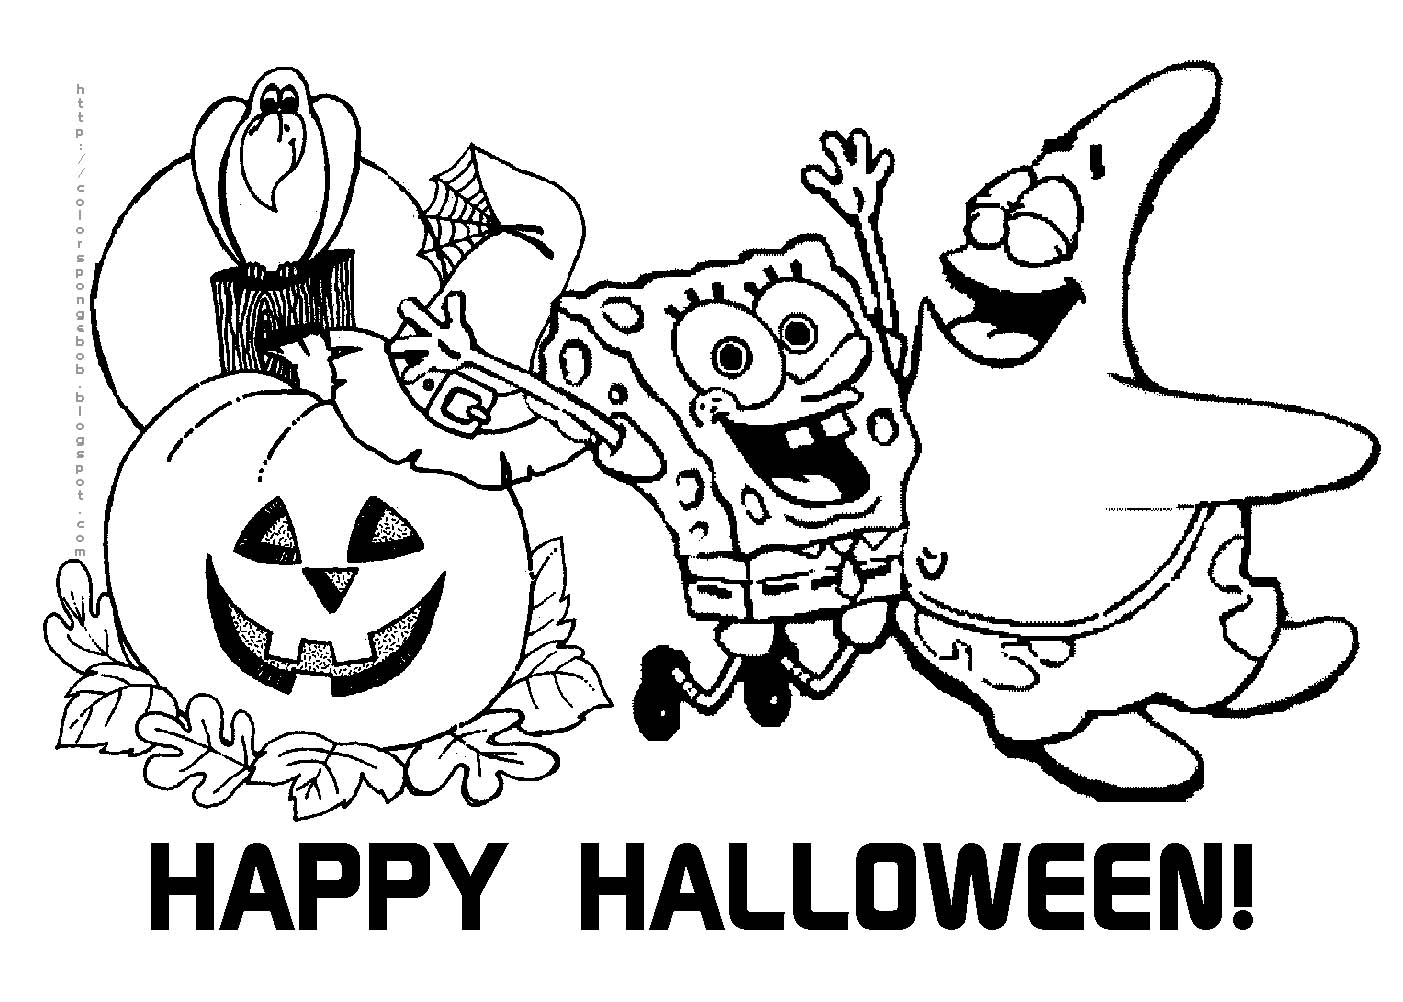 Sponge Bob Halloween Coloring Pages  to Print 1g - Free Download